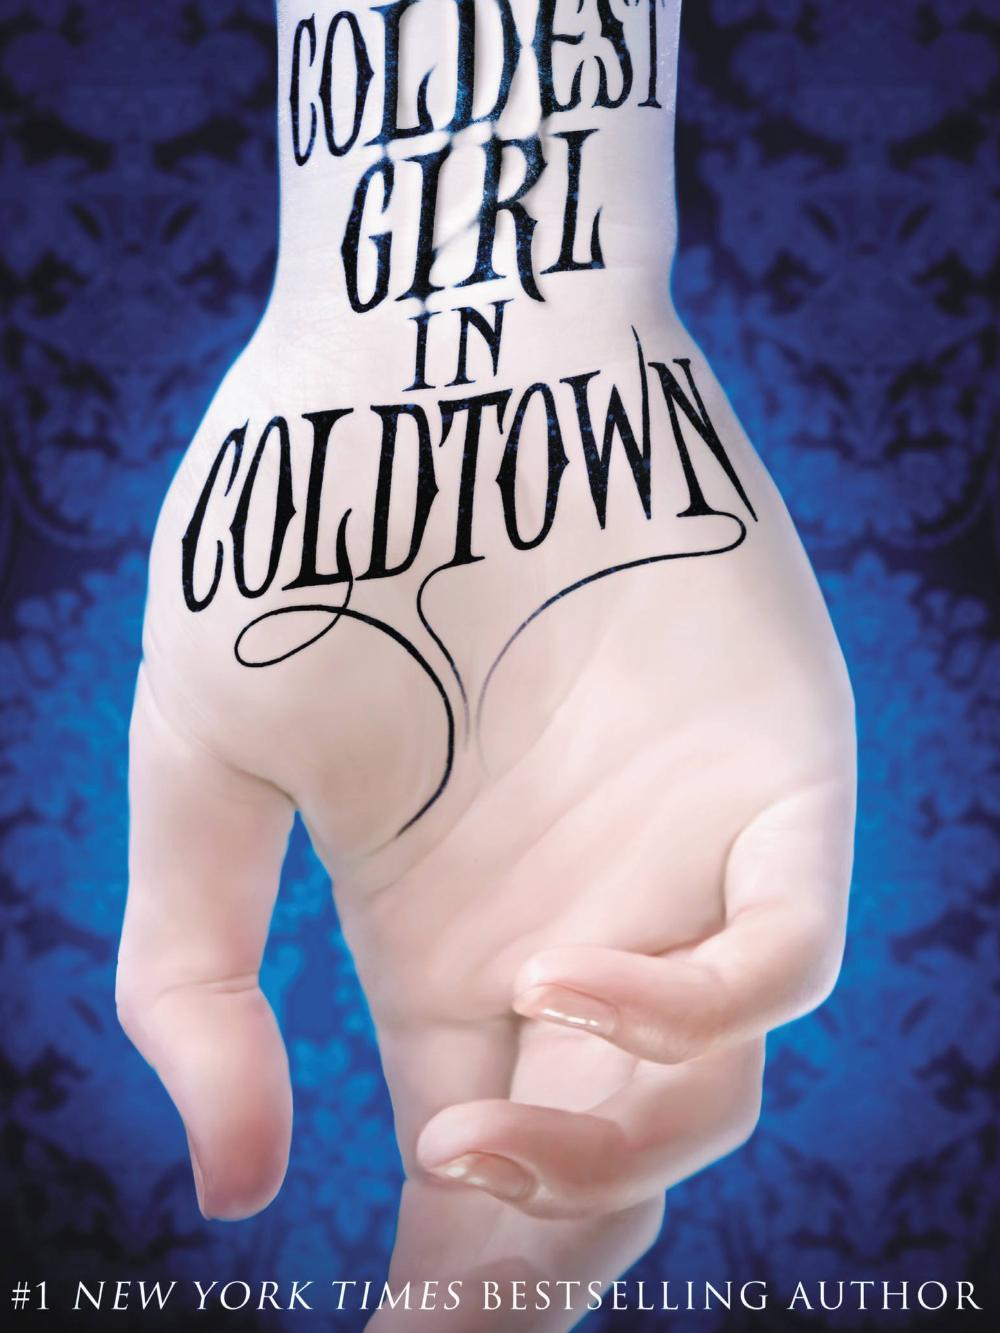 The Coldest Girl In Coldtown by Holly Black, from Teen Read Week